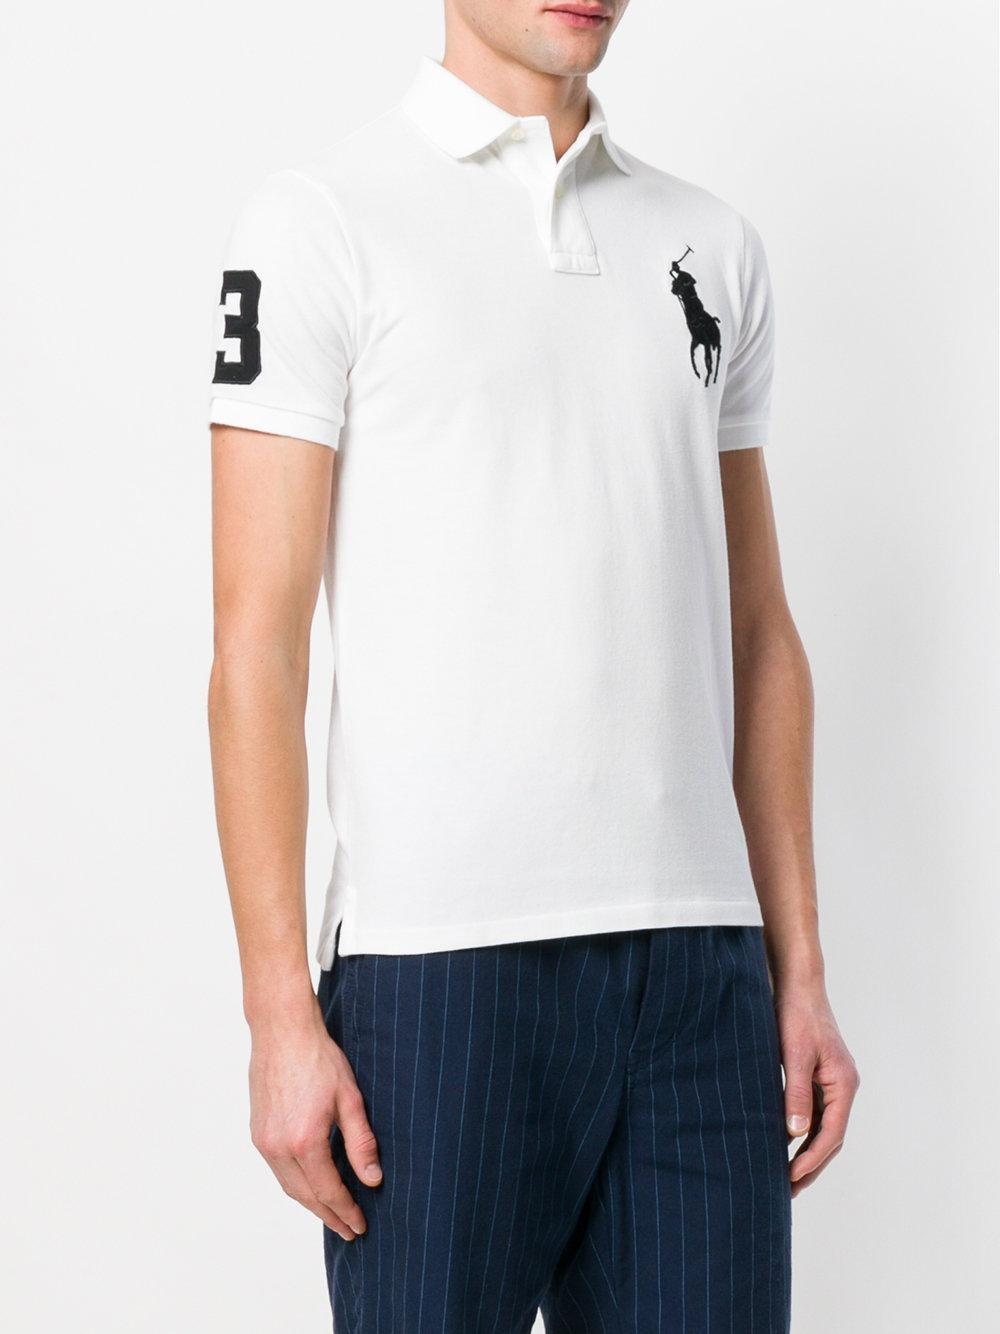 be422ba3 Polo Ralph Lauren - White Embroidered Big Pony Polo Shirt for Men - Lyst.  View fullscreen